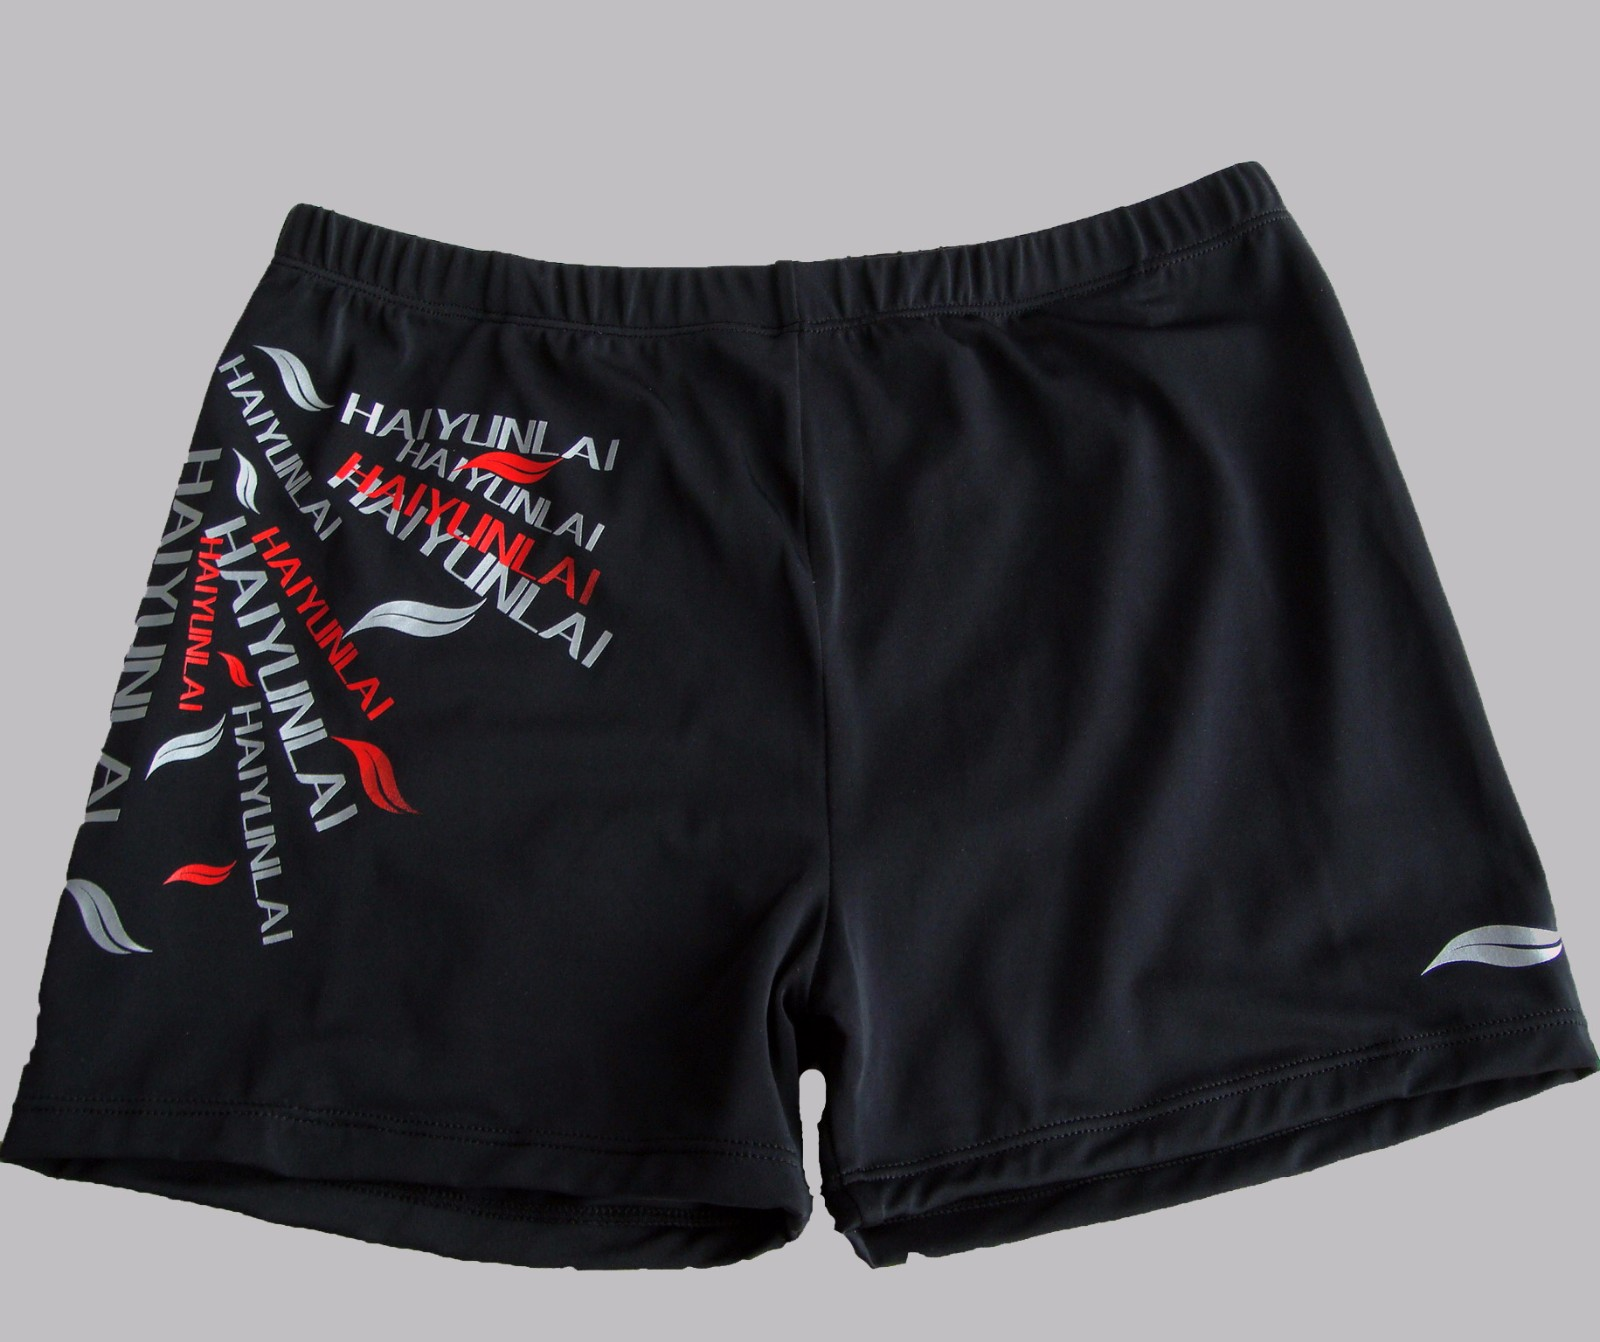 Boxer Shorts Manufacturers, Boxer Shorts Factory, Supply Boxer Shorts